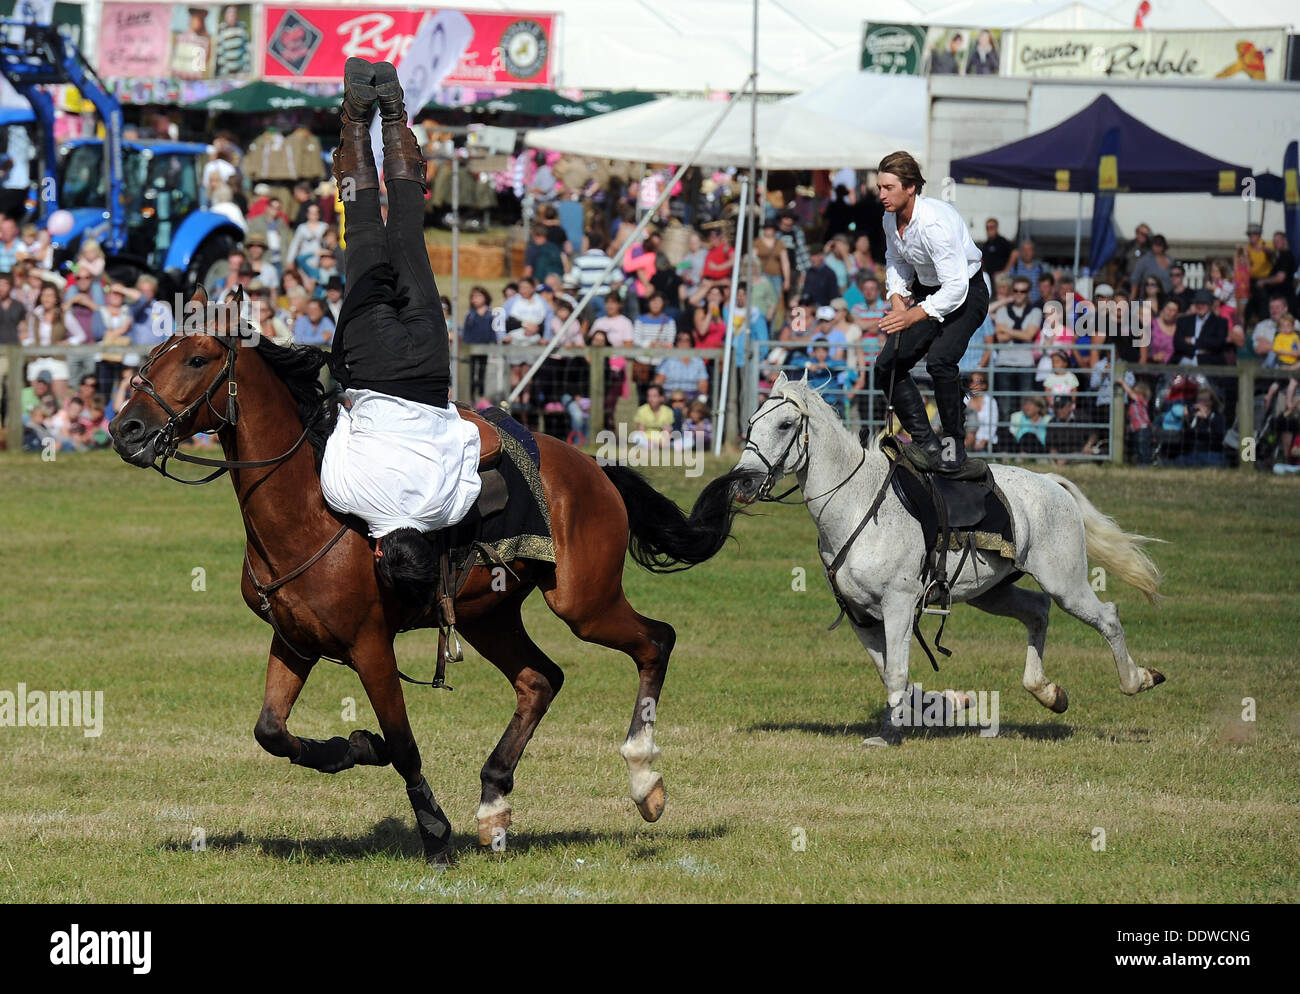 Dorset County Show, Britain, UK, The Devil's Horsemen Stunt Team, 07th September, 2013  Picture by Geoff Moore/Dorset Media Service/Alamy Live News - Stock Image